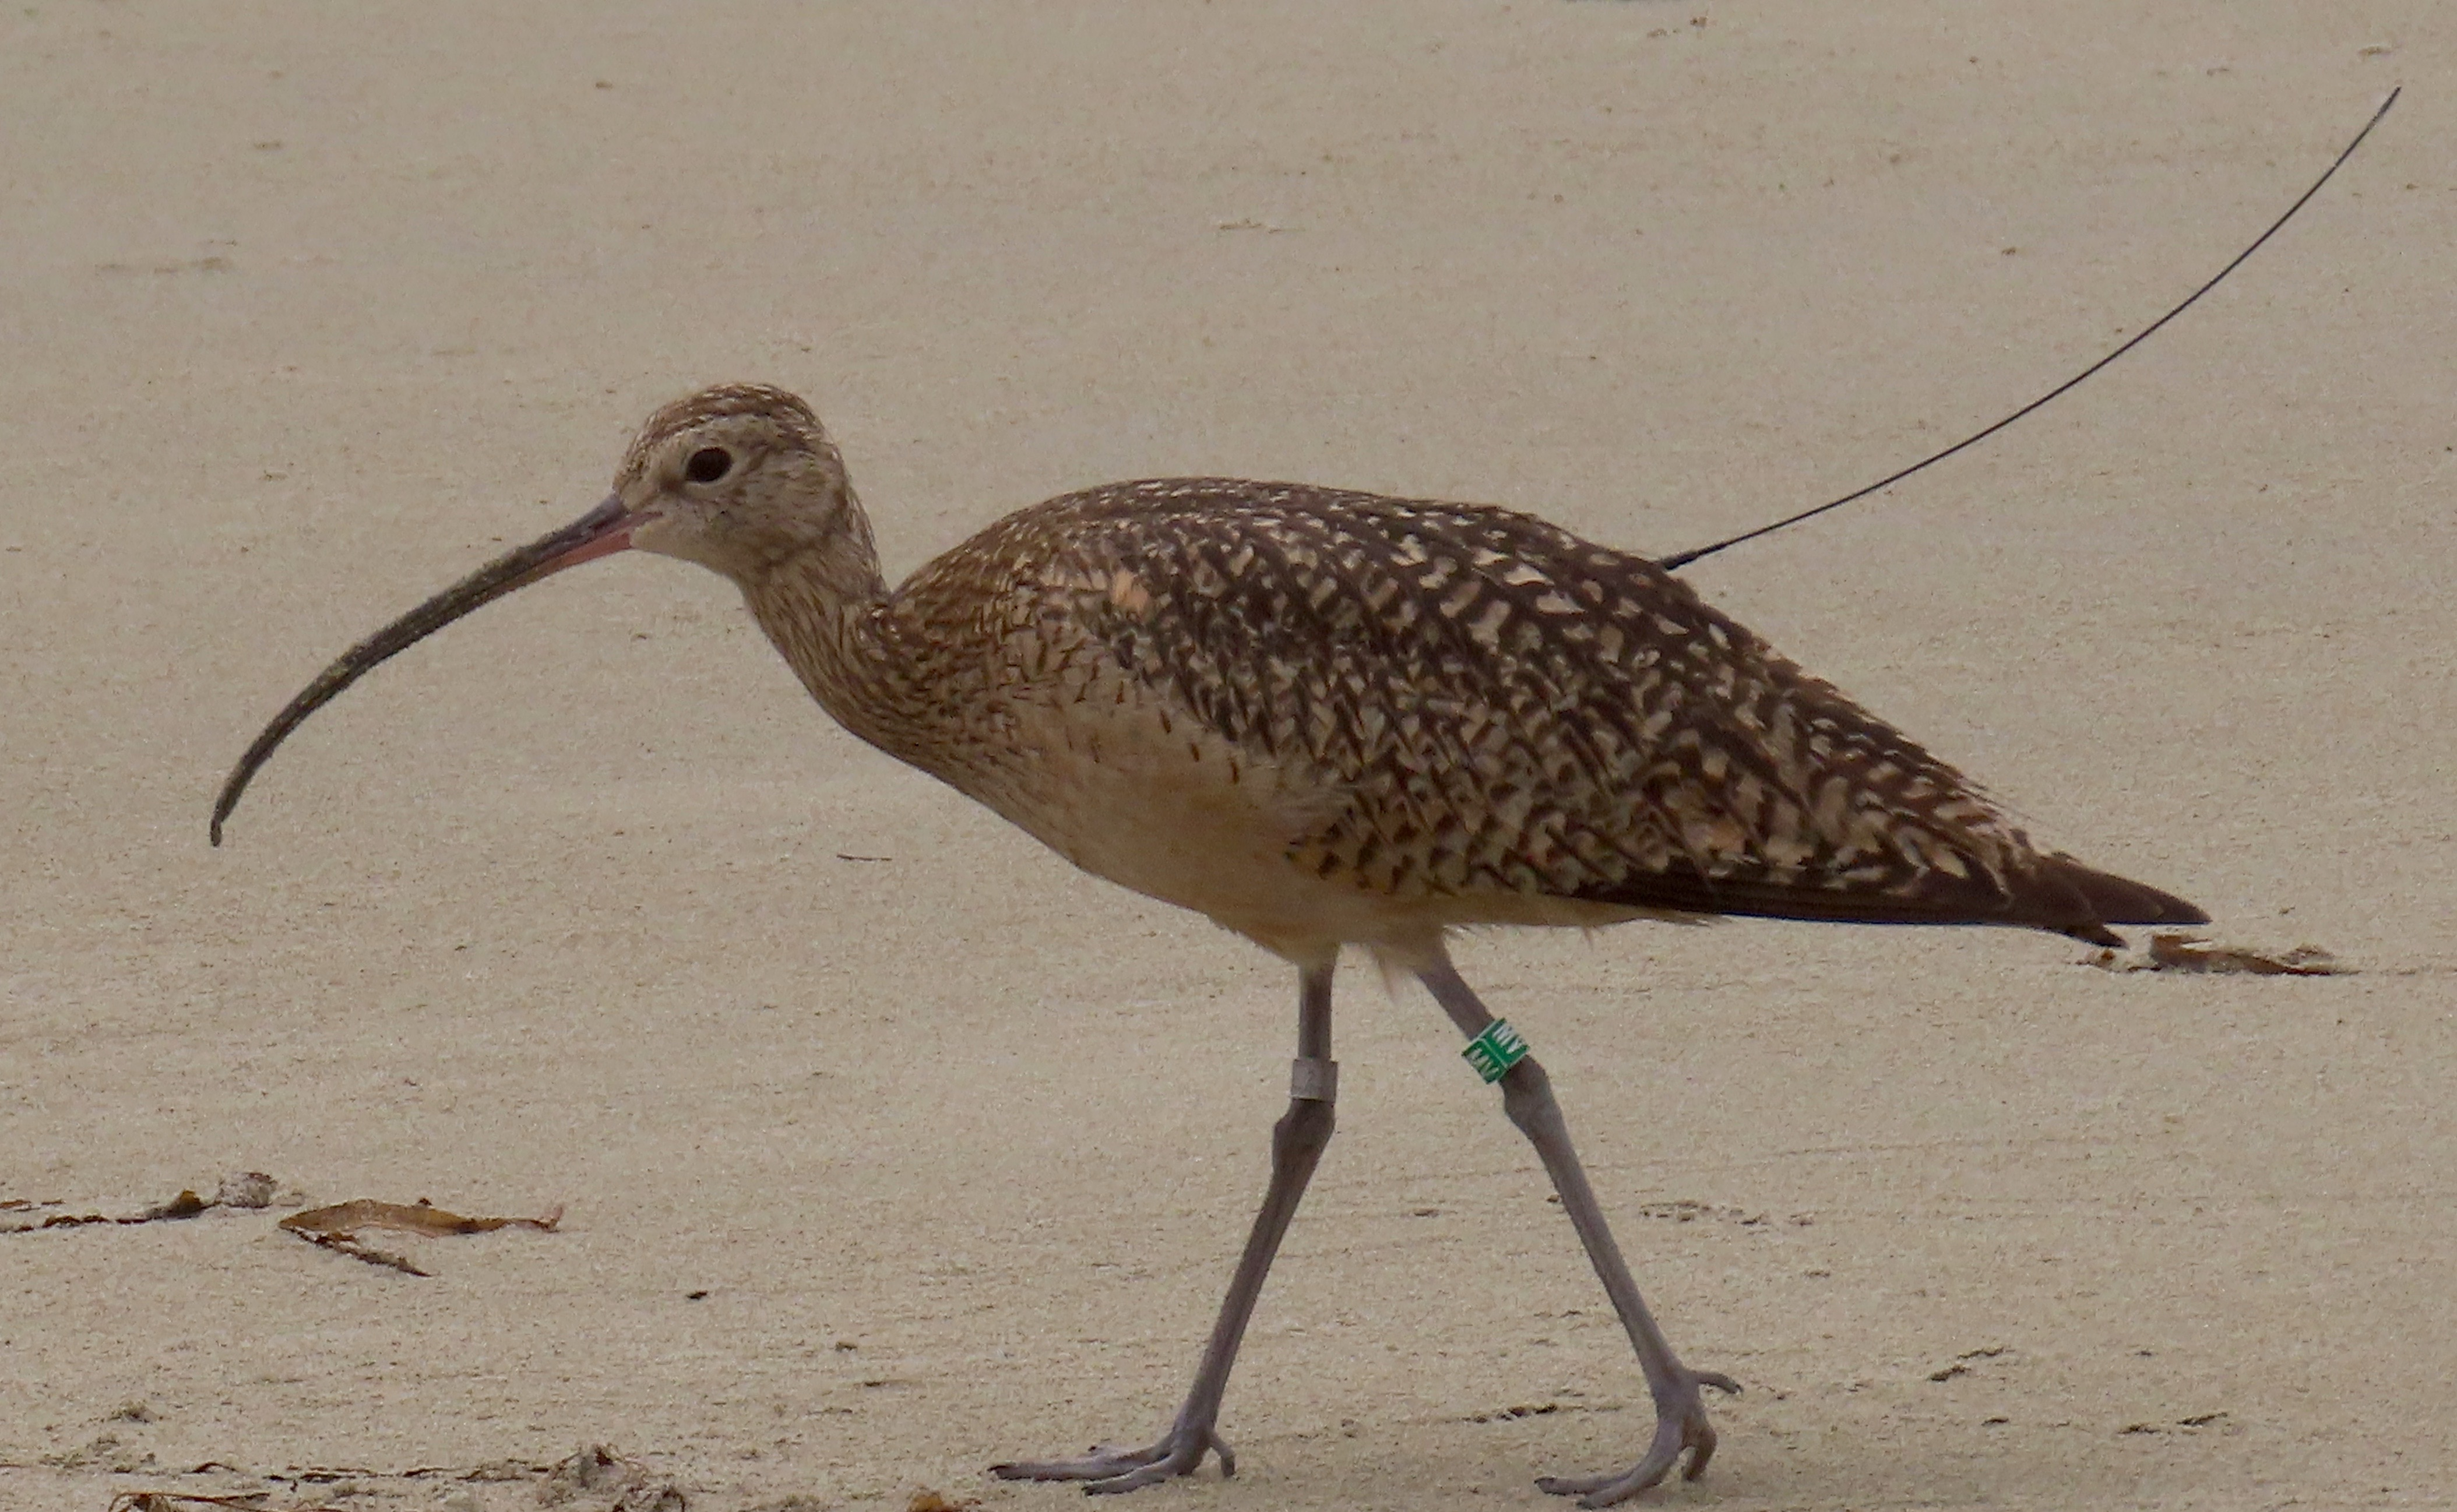 a curlew standing on sand. A thin antenna is visible sticking out from his back feathers. He has a green leg band on one leg and a metal band around the other.